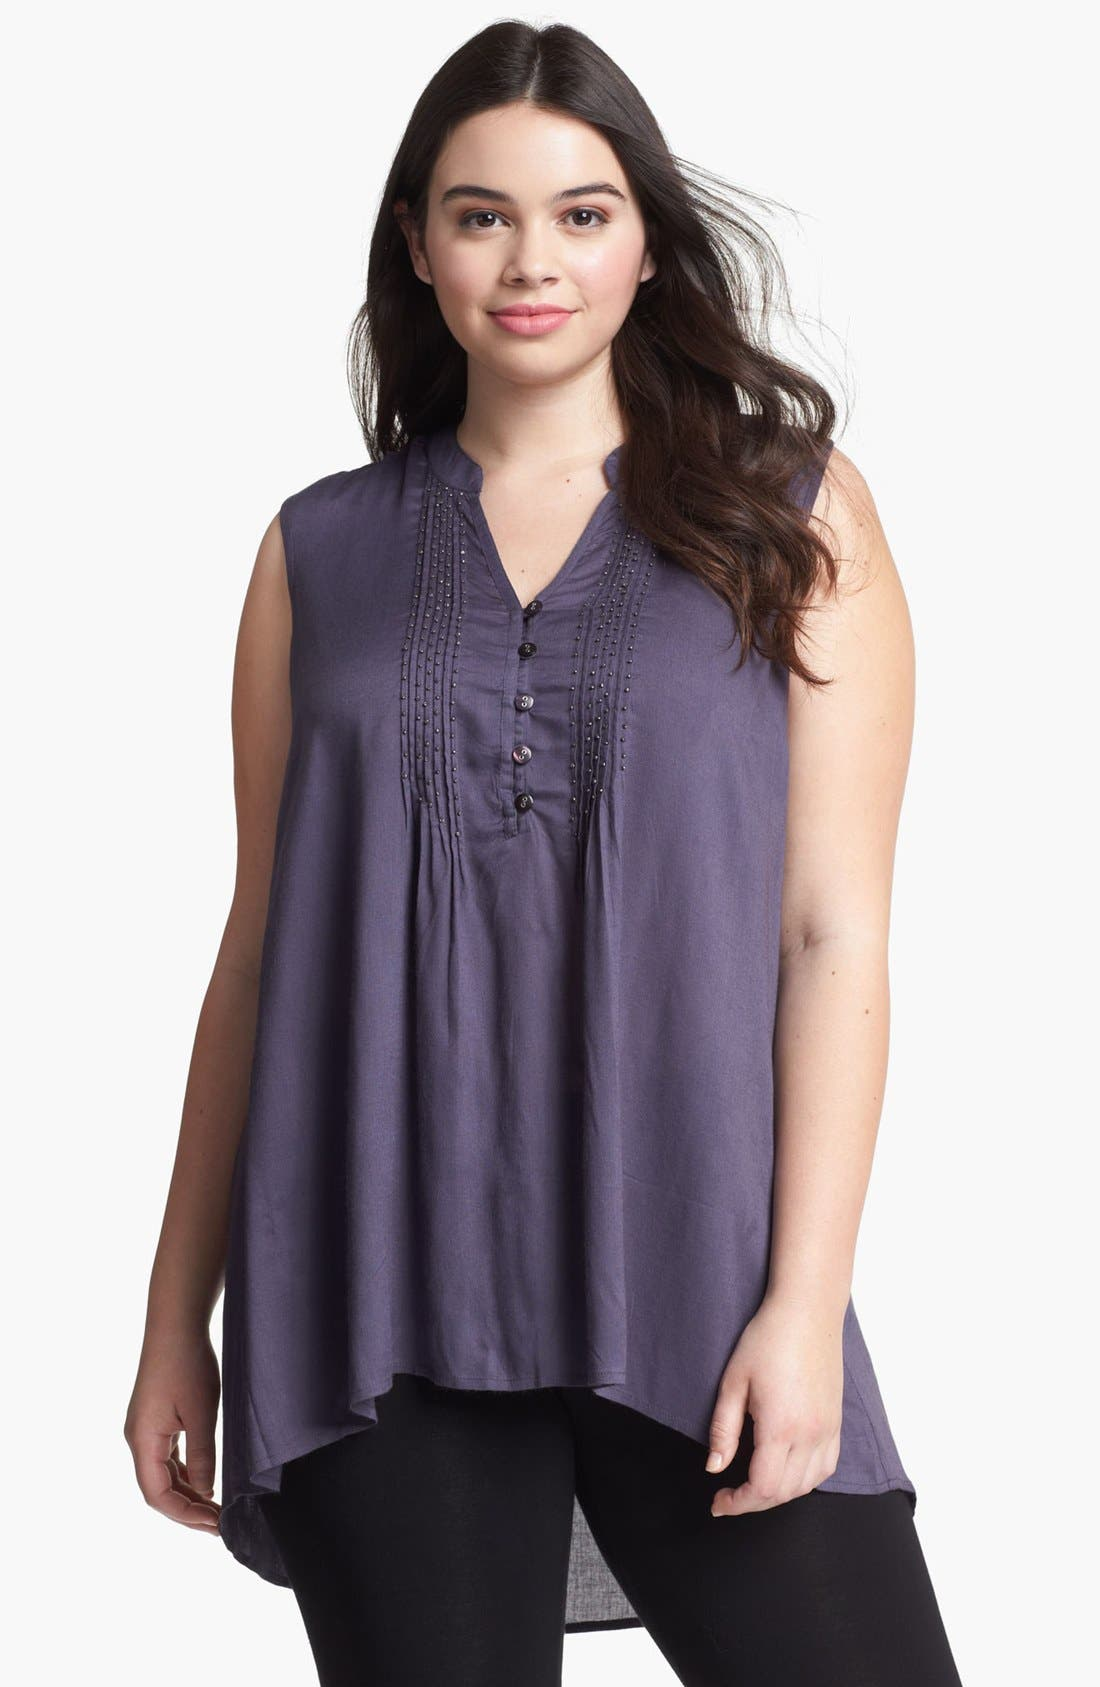 Alternate Image 1 Selected - Evans Embellished Sleeveless High/Low Top (Plus Size)